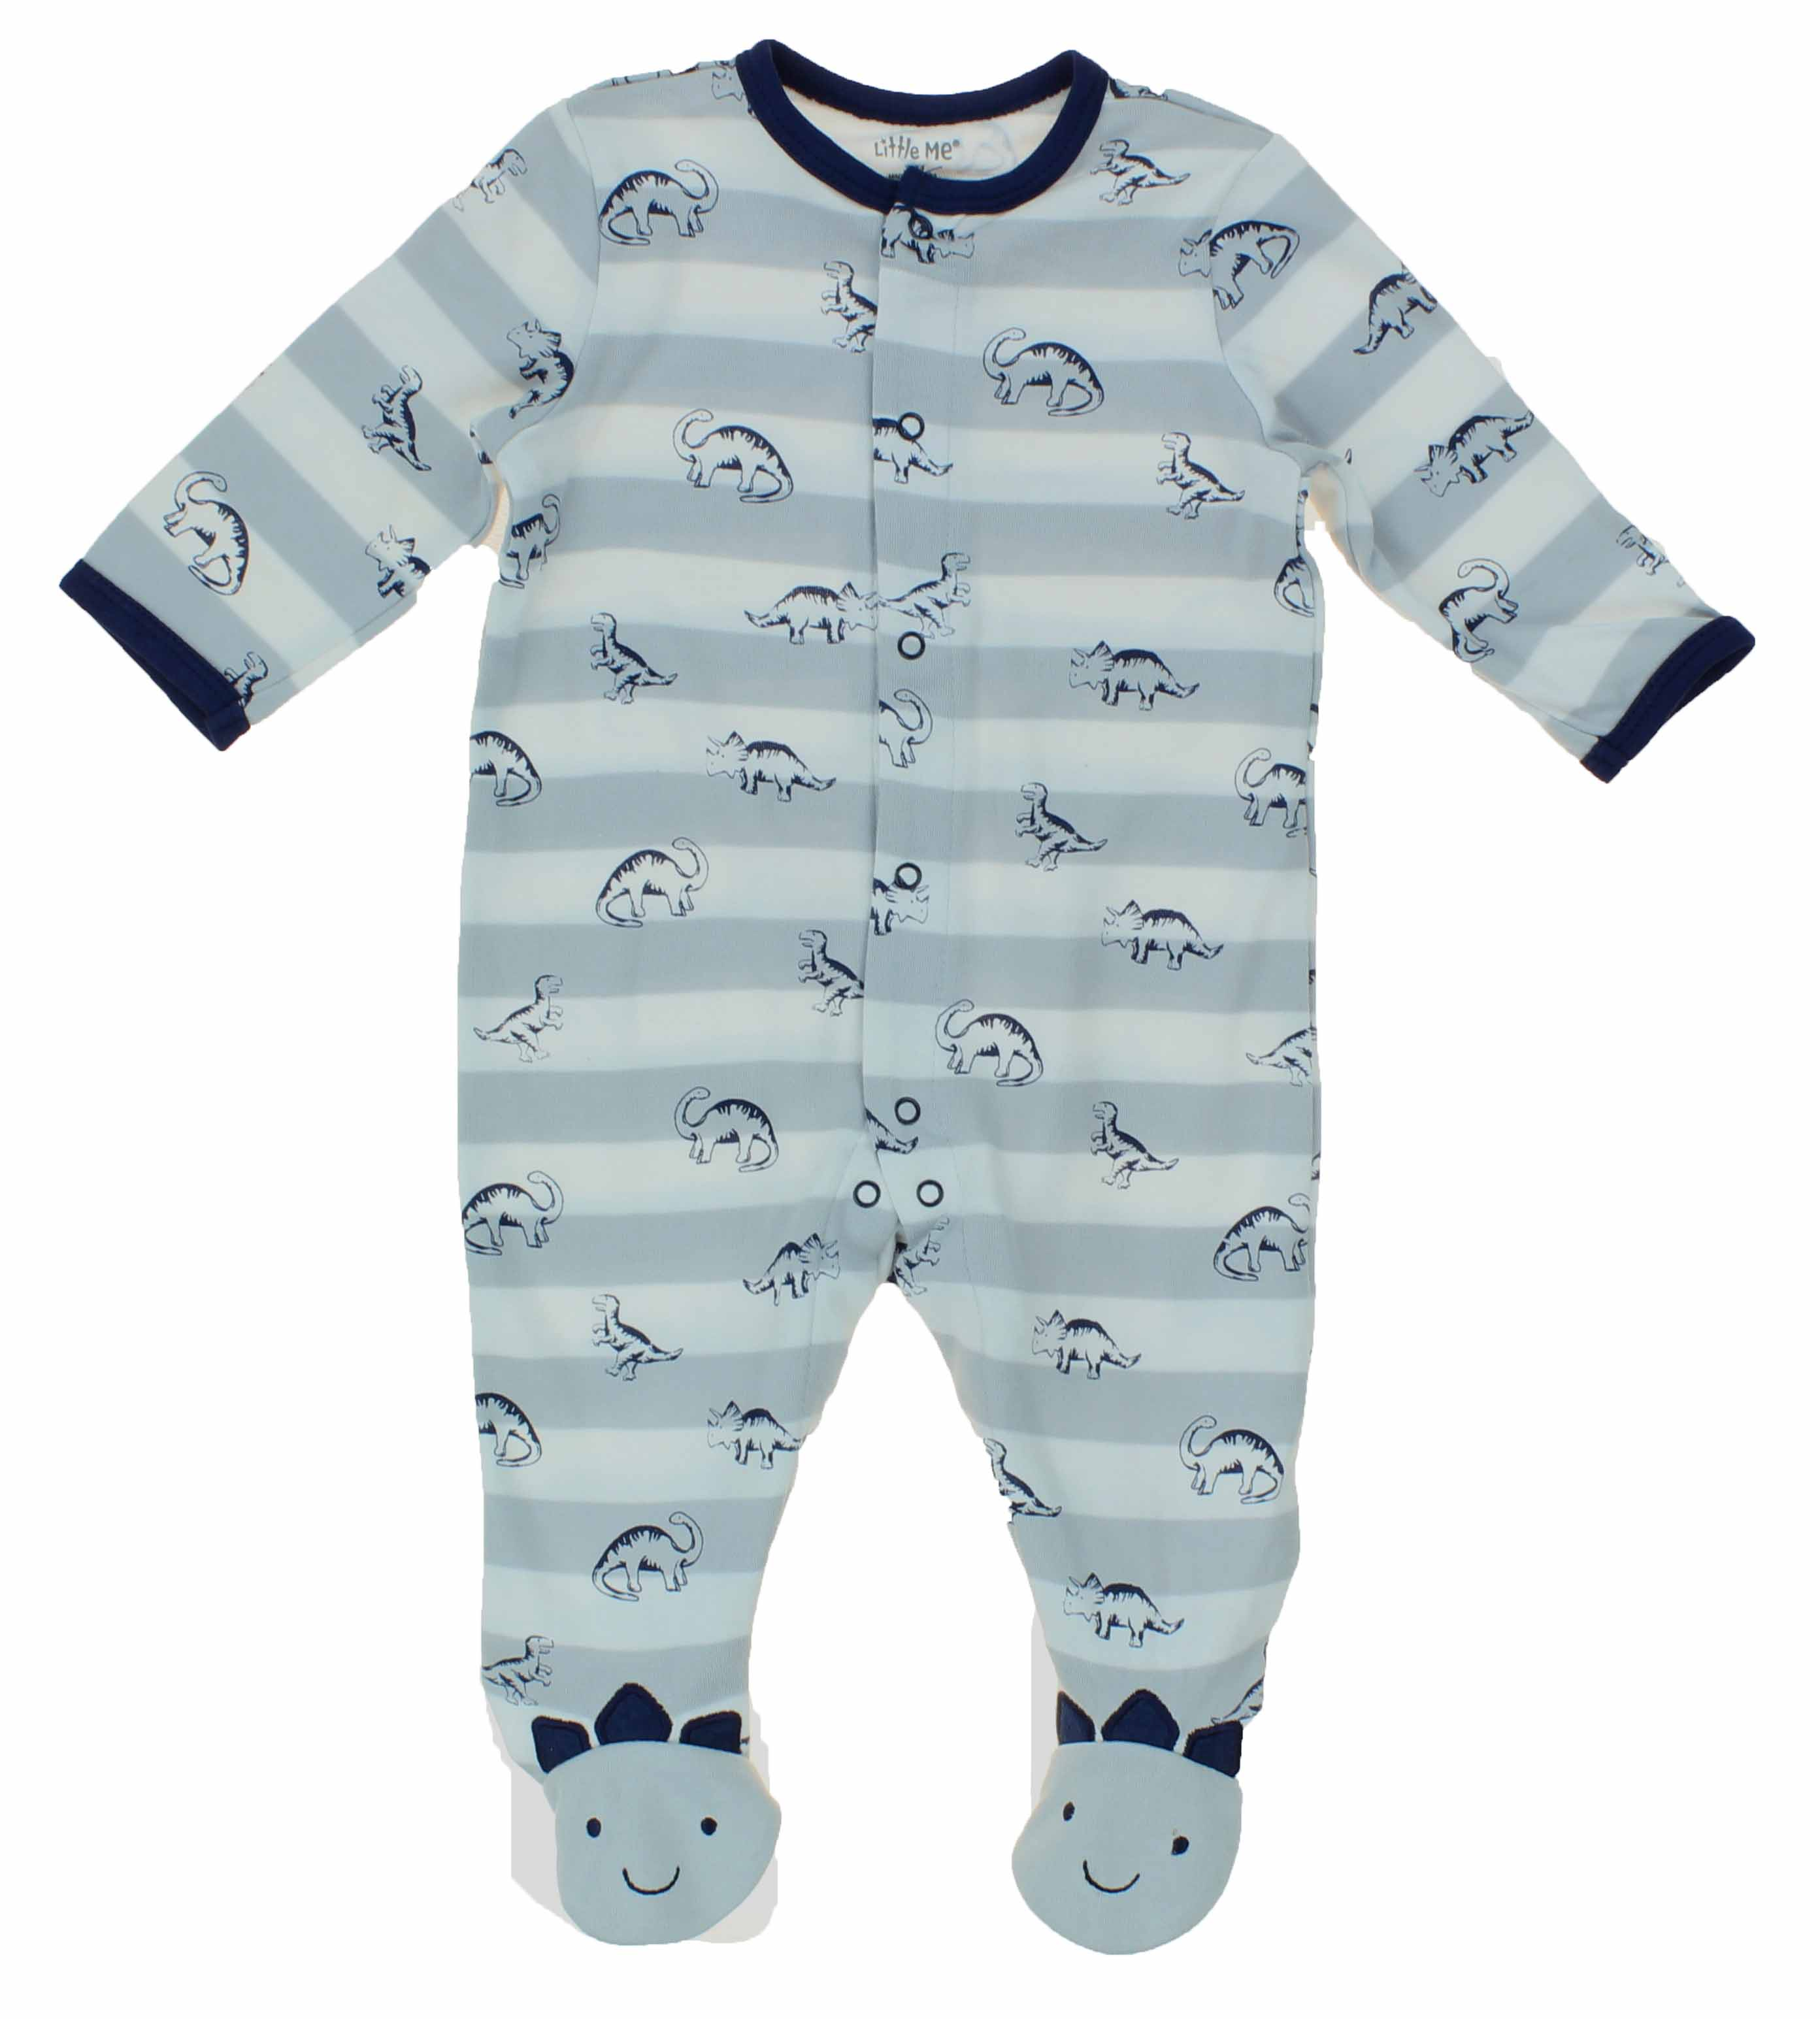 54379a7f0793 Little Me Baby Boys Size 3 Months 1 Piece Long Sleeve Footed Pajama ...